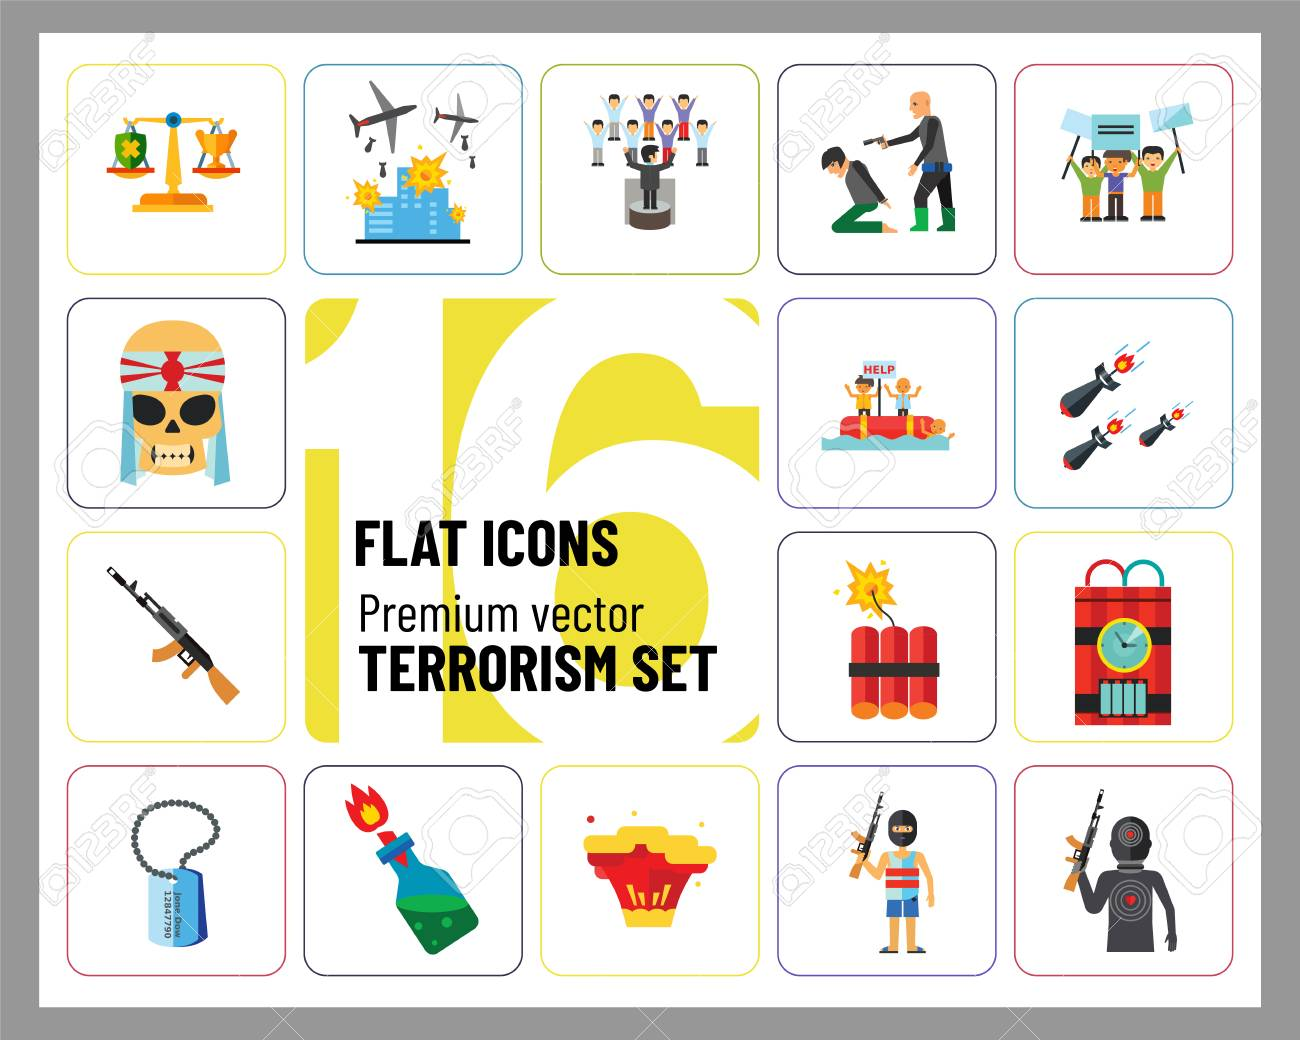 Terrorism Icon Set. Kamikaze Fire Cocktail Dynamite Army Tags Hostage Bomb With Timer Machine Gun Missiles Explosion Refugees Terrorist Shooting Target War - 112323015